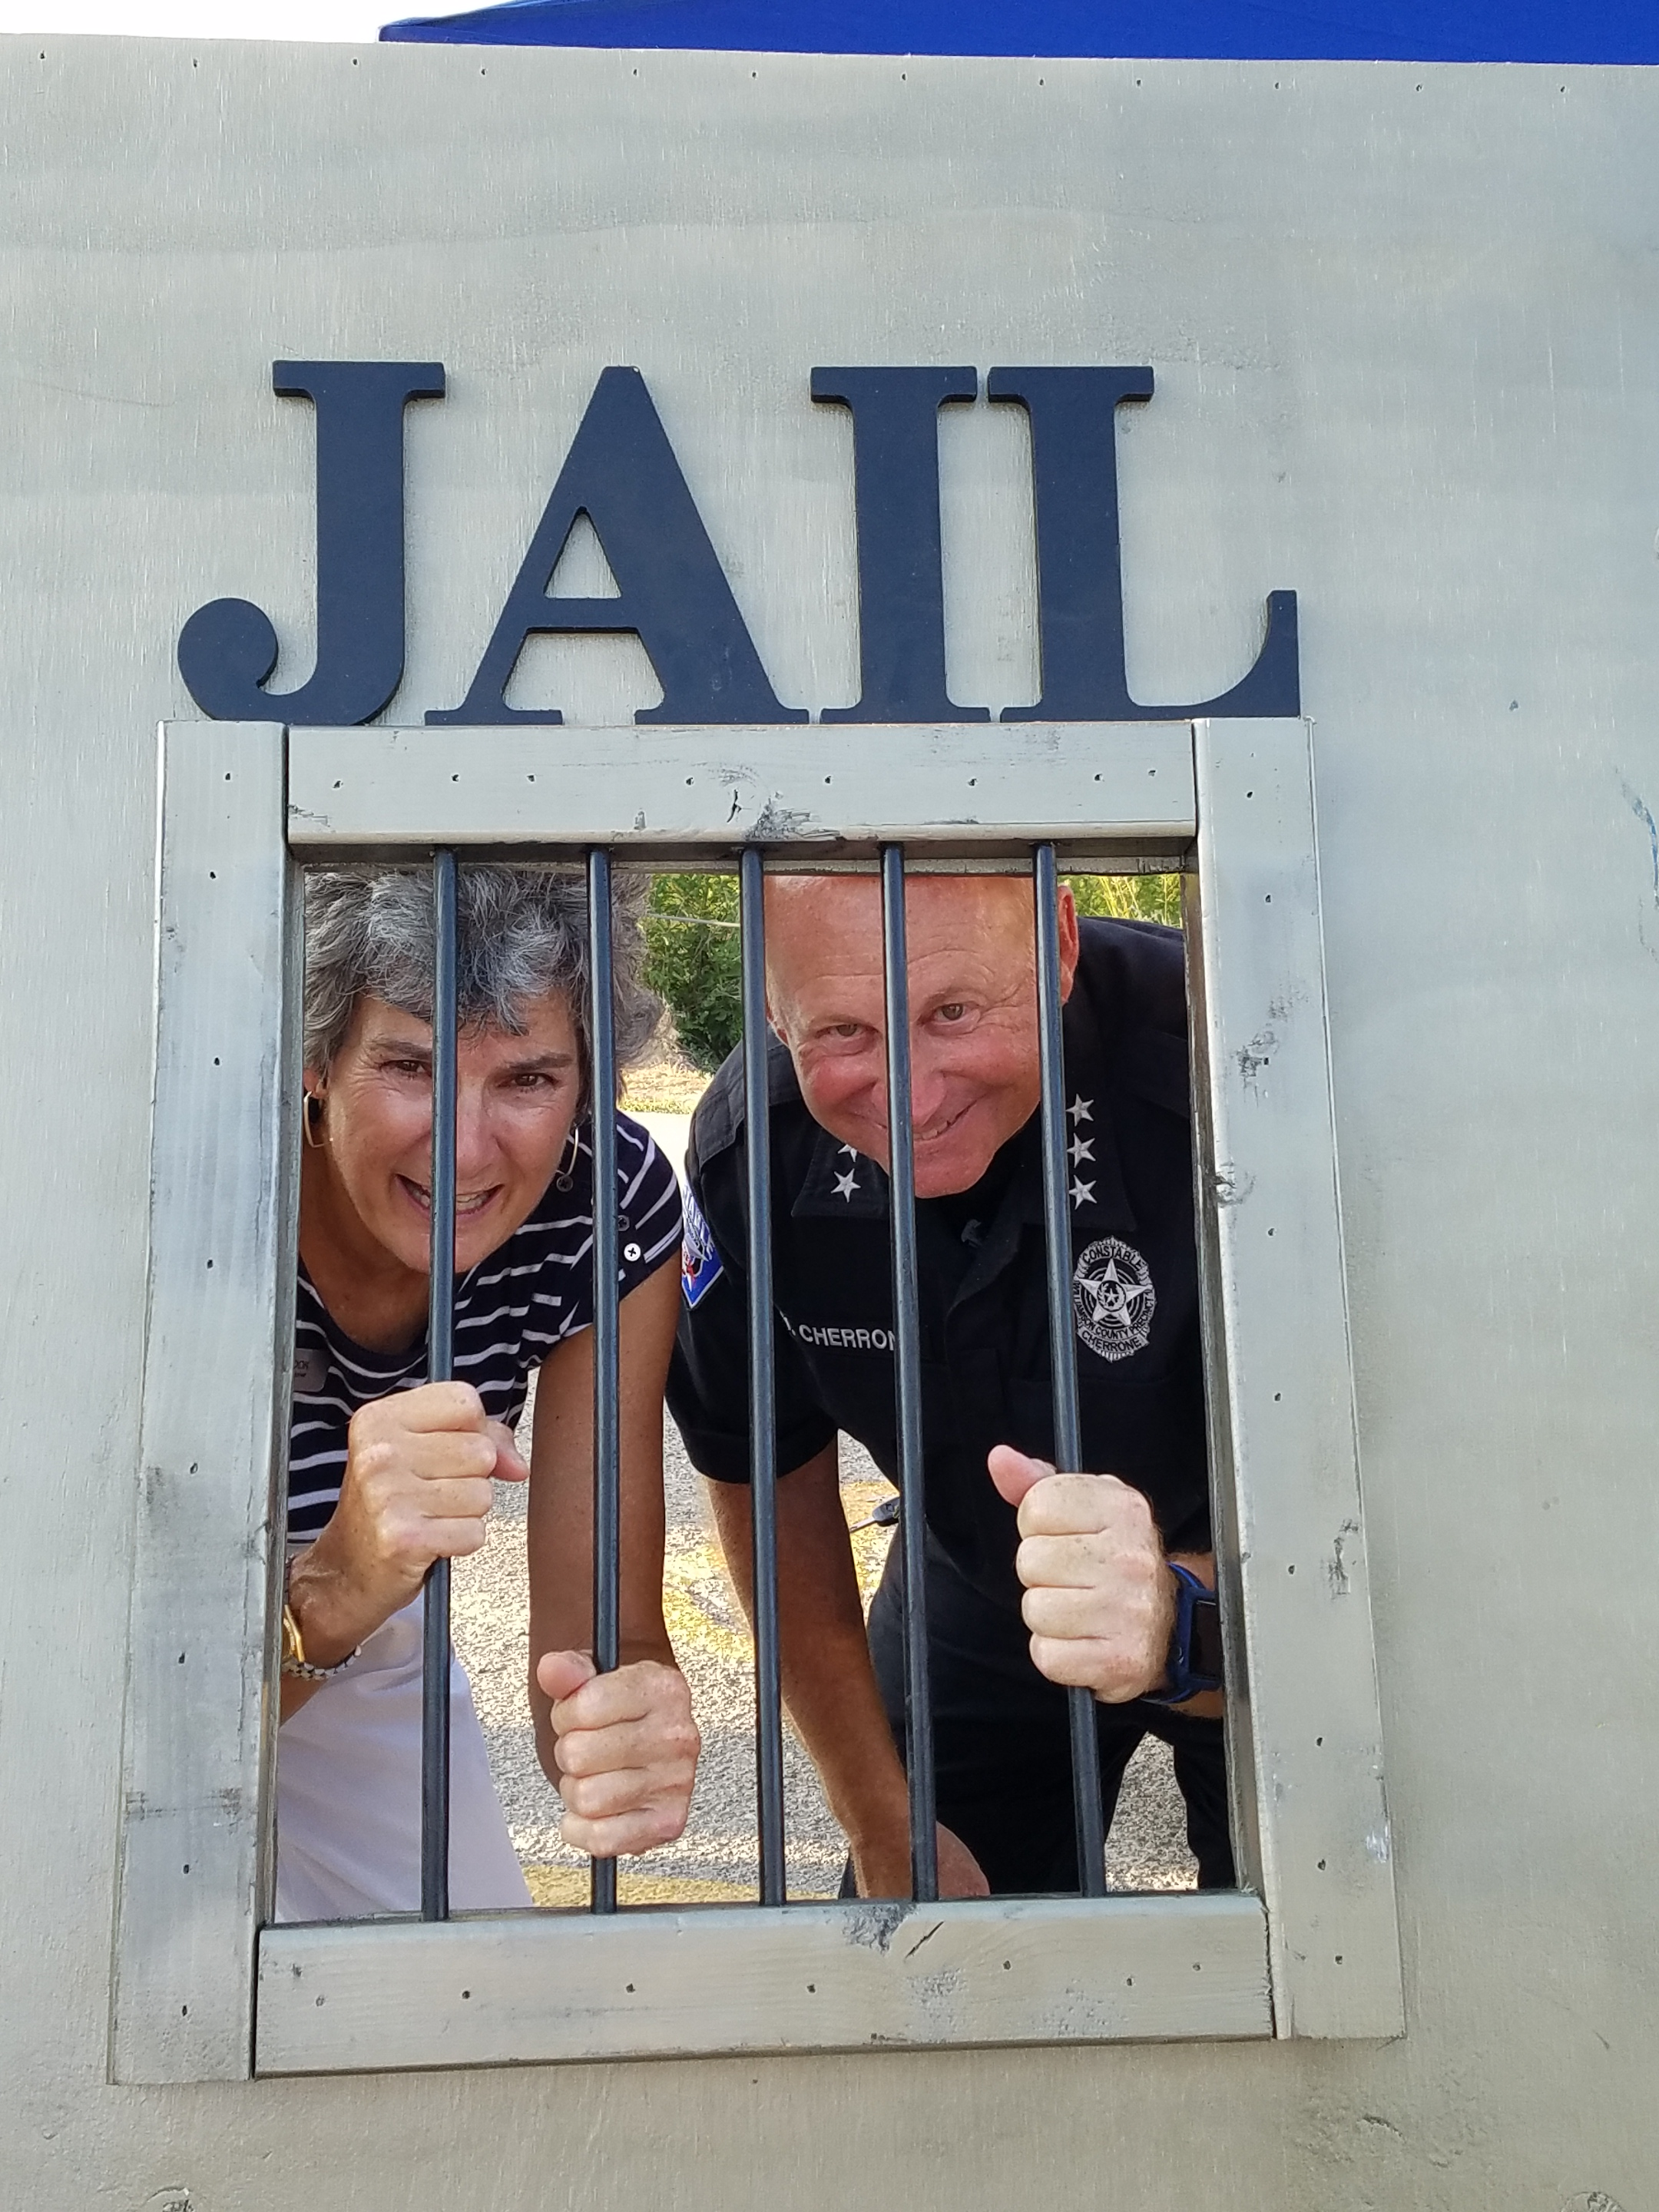 Commissioner Cook and Constable Pct. 1 Vinnie Cherrone stand behind the makeshift jail front.